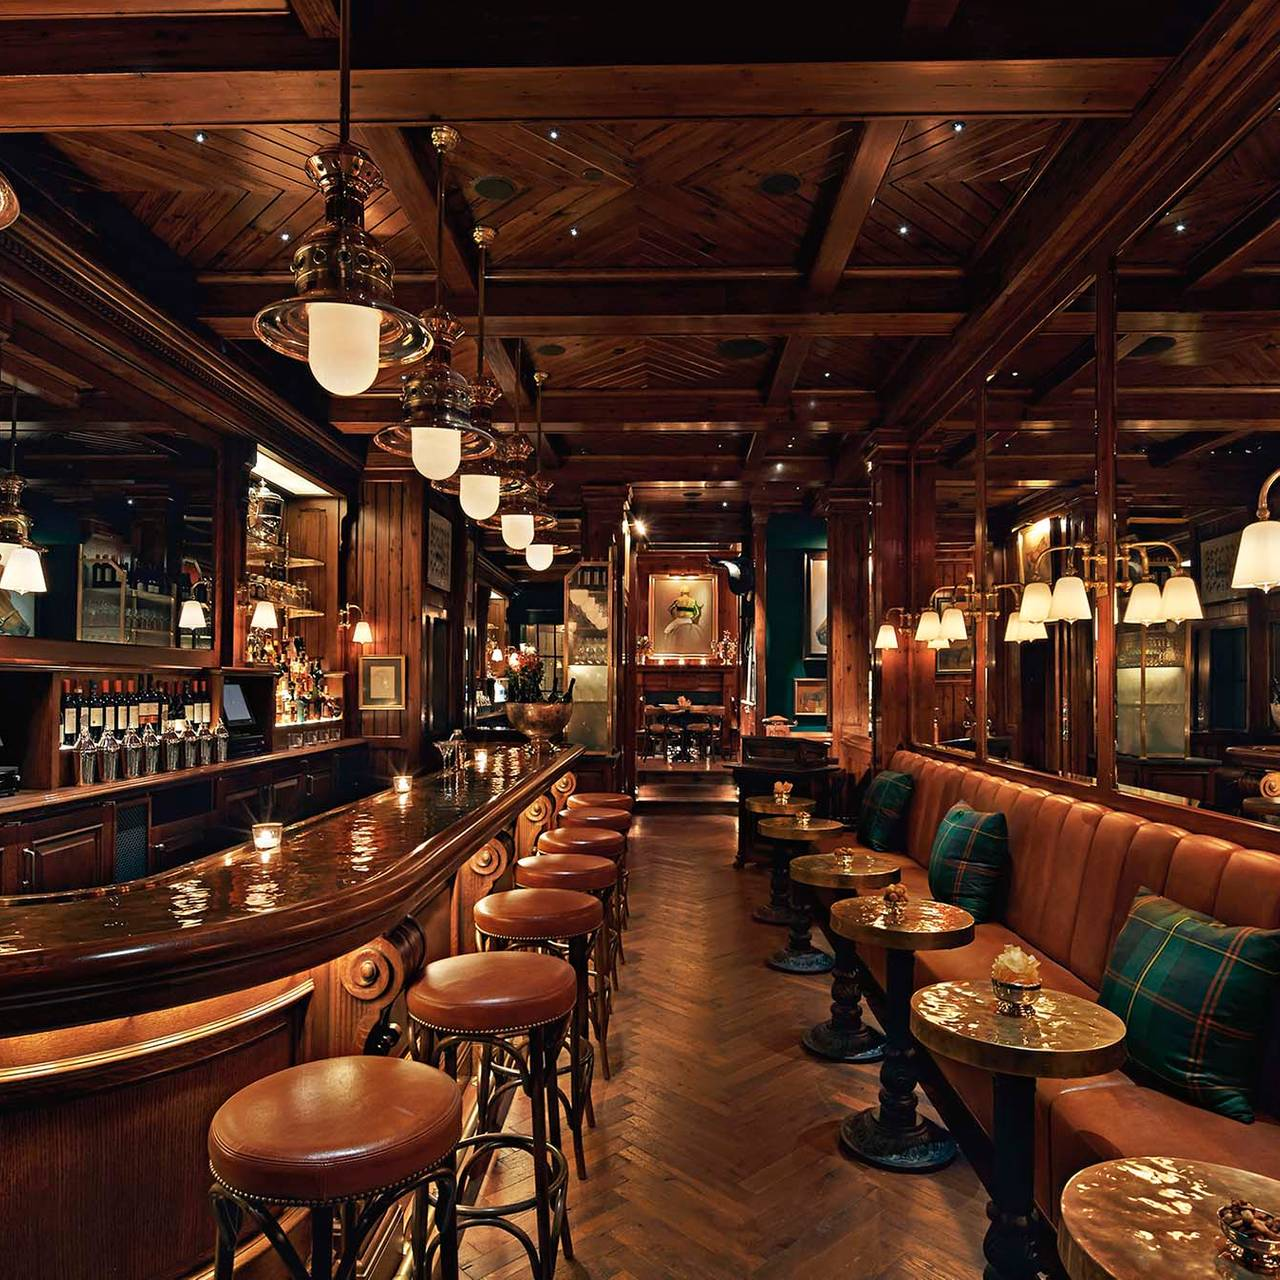 7b1462b57 The Polo Bar Restaurant - New York, NY | OpenTable